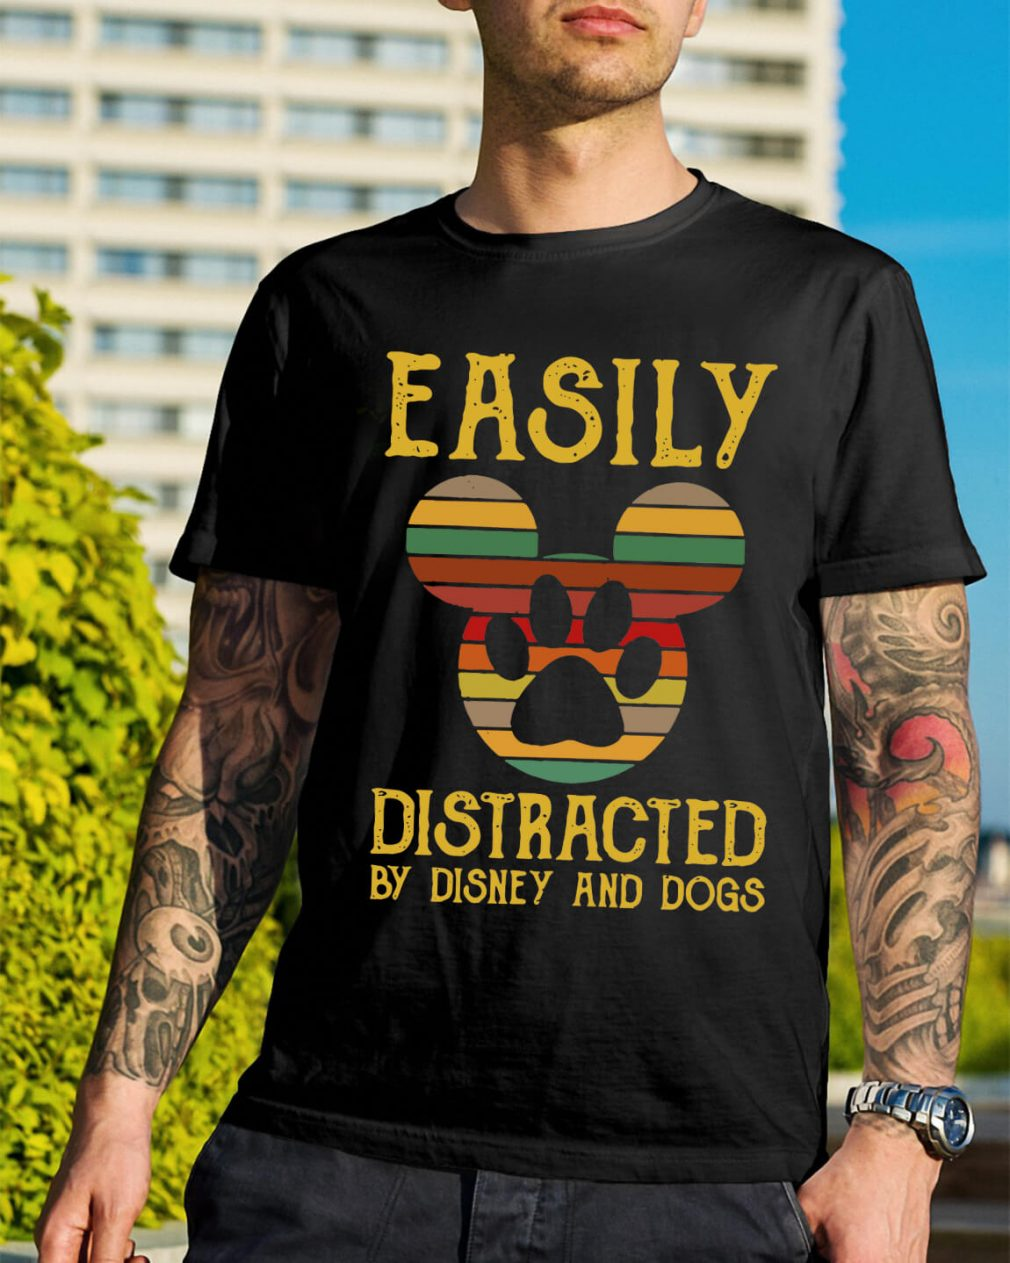 Easily distracted by Disney and dogs shirt